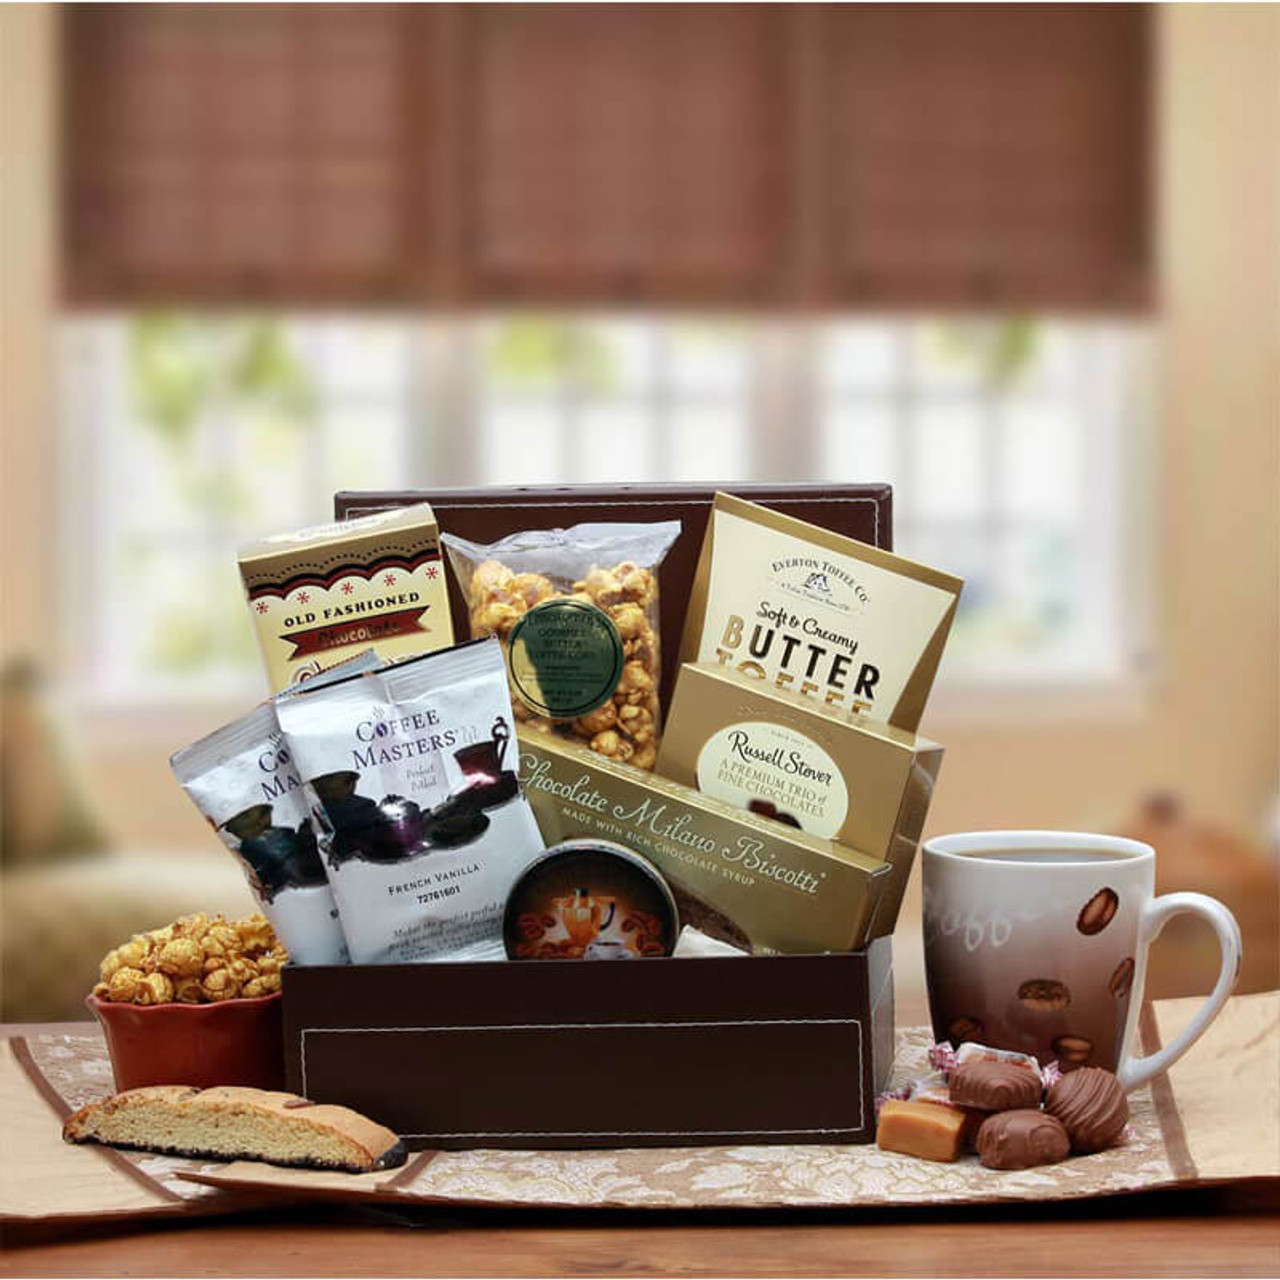 Coffee Break Gift Box by canterberrygifts.com